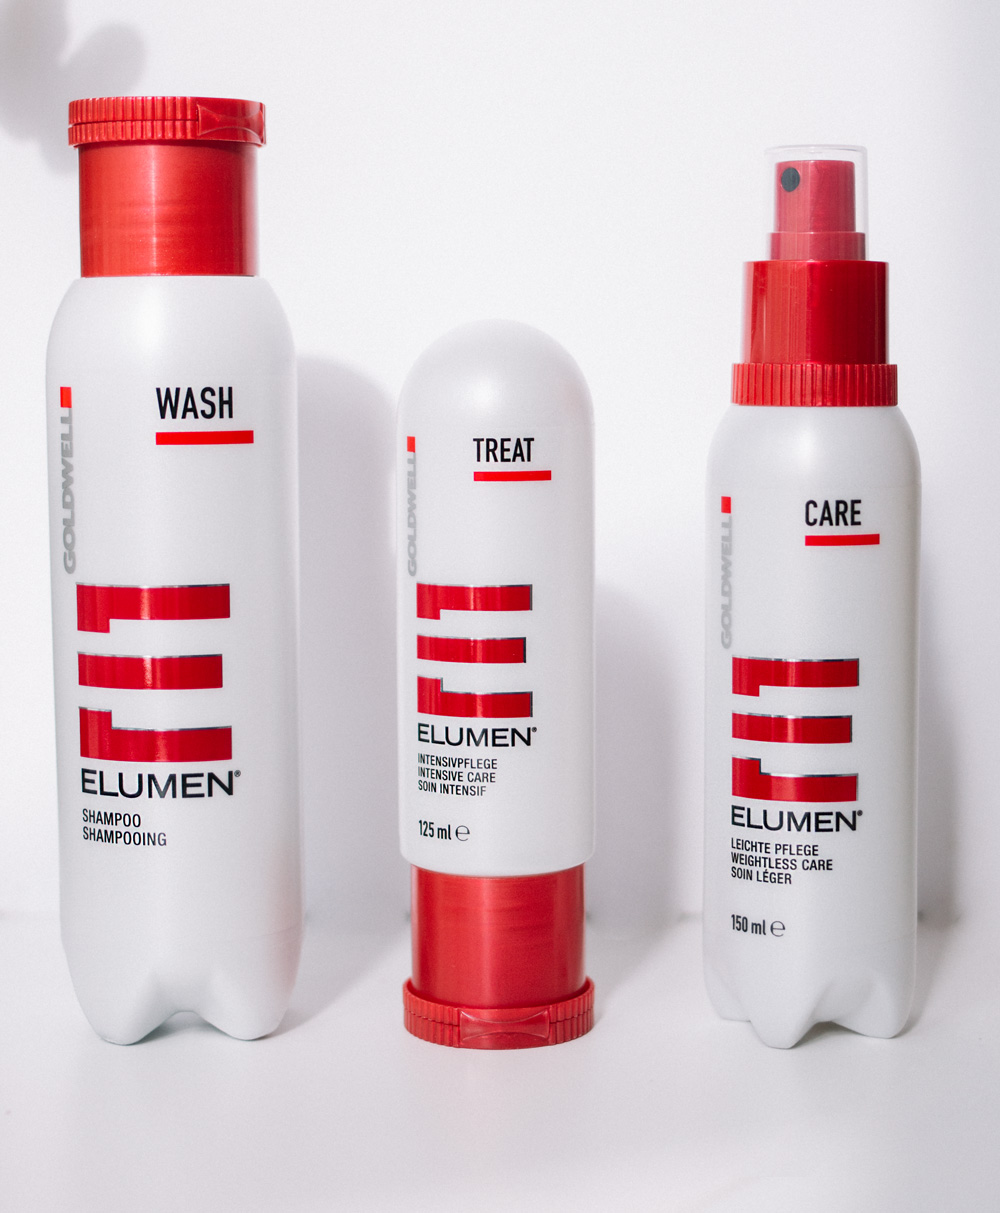 Elumen home care products